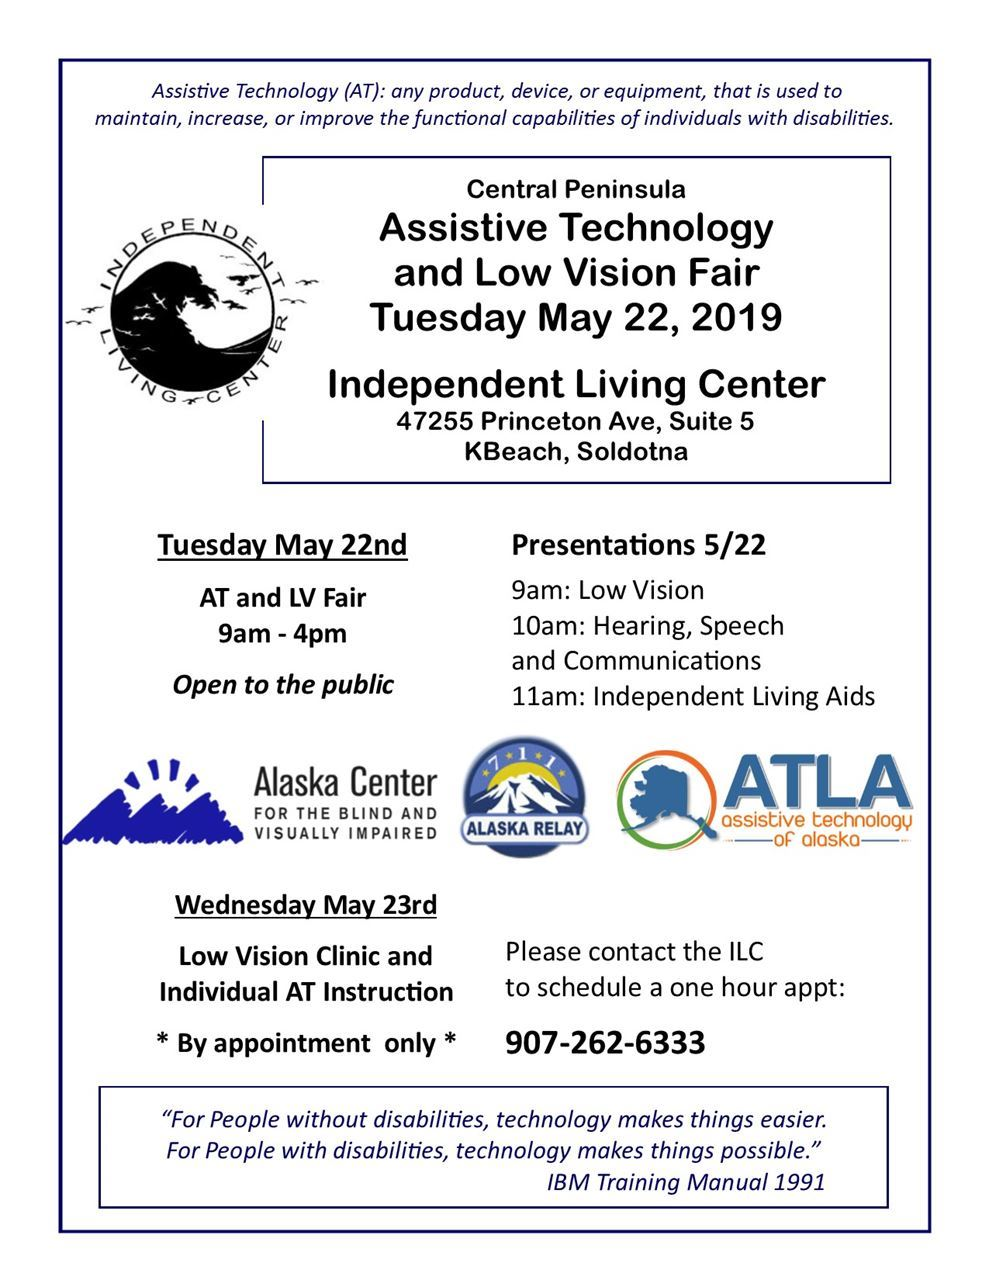 Central Peninsula Assistive Technology and Low Vision Fair Tuesday May 22nd 2019 at the ILC office 47255 Prinston Ave Suite 5 off of KBeach in Soldotna, Contat phone 907-262-6333